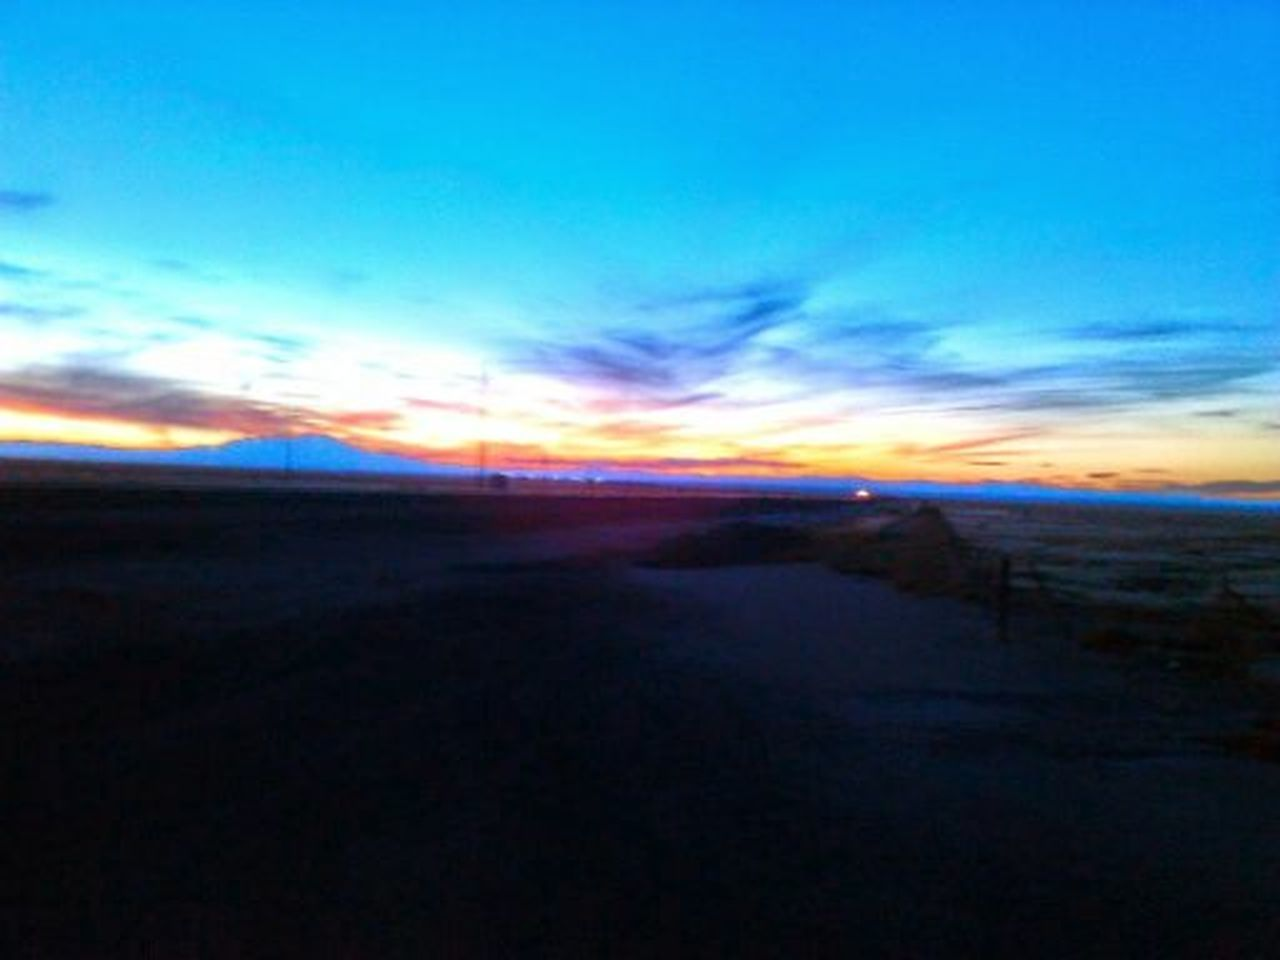 Mountainair, NM Sunset Sunset Cloud - Sky Nature Sky Scenics Beauty In Nature Dramatic Sky No People Outdoors Beach